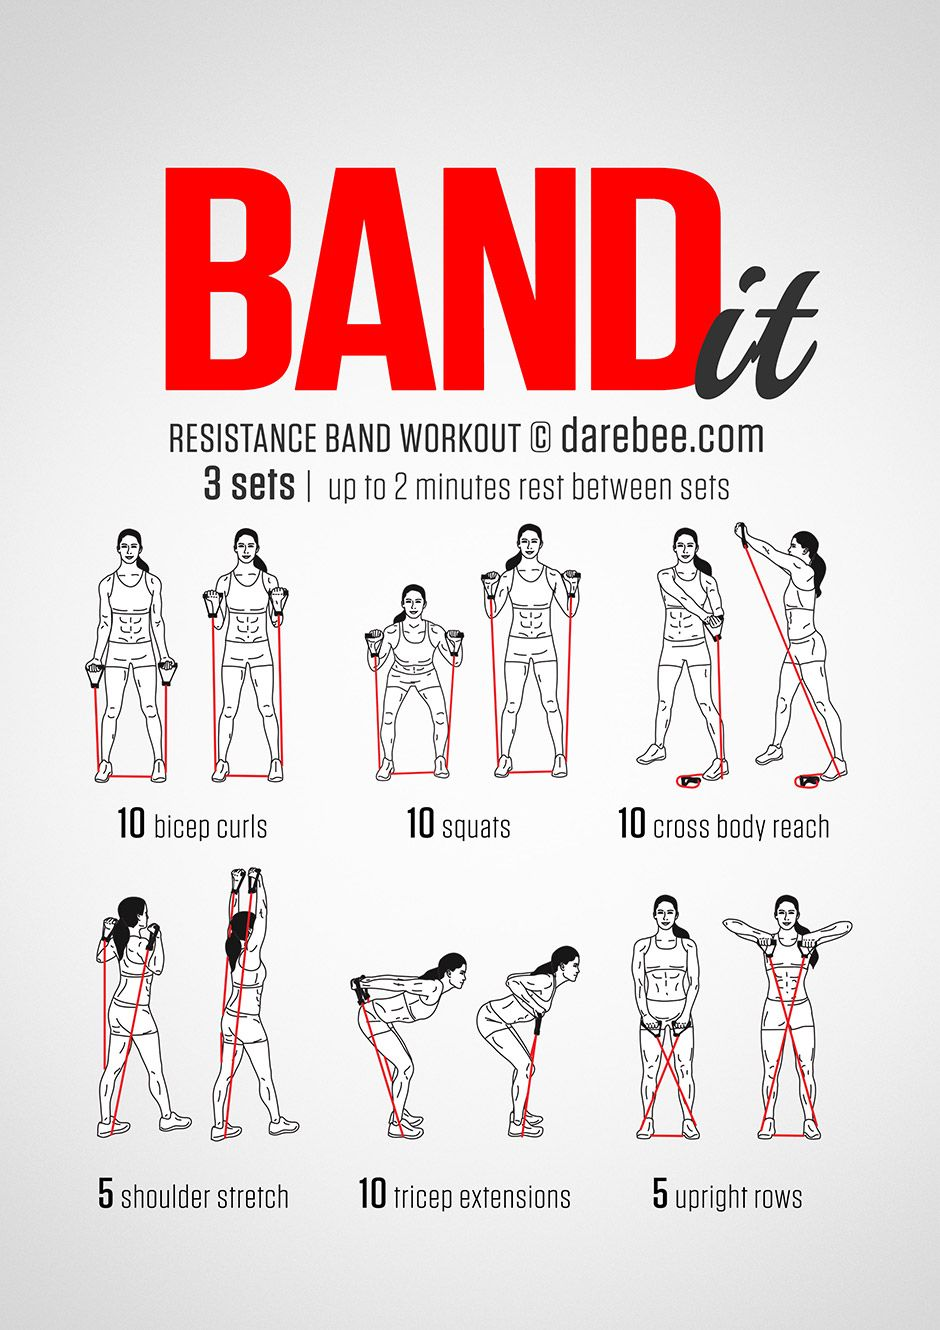 pinterest best exercise exercises glutes on workouts band work workout images resistance bands for abs booty